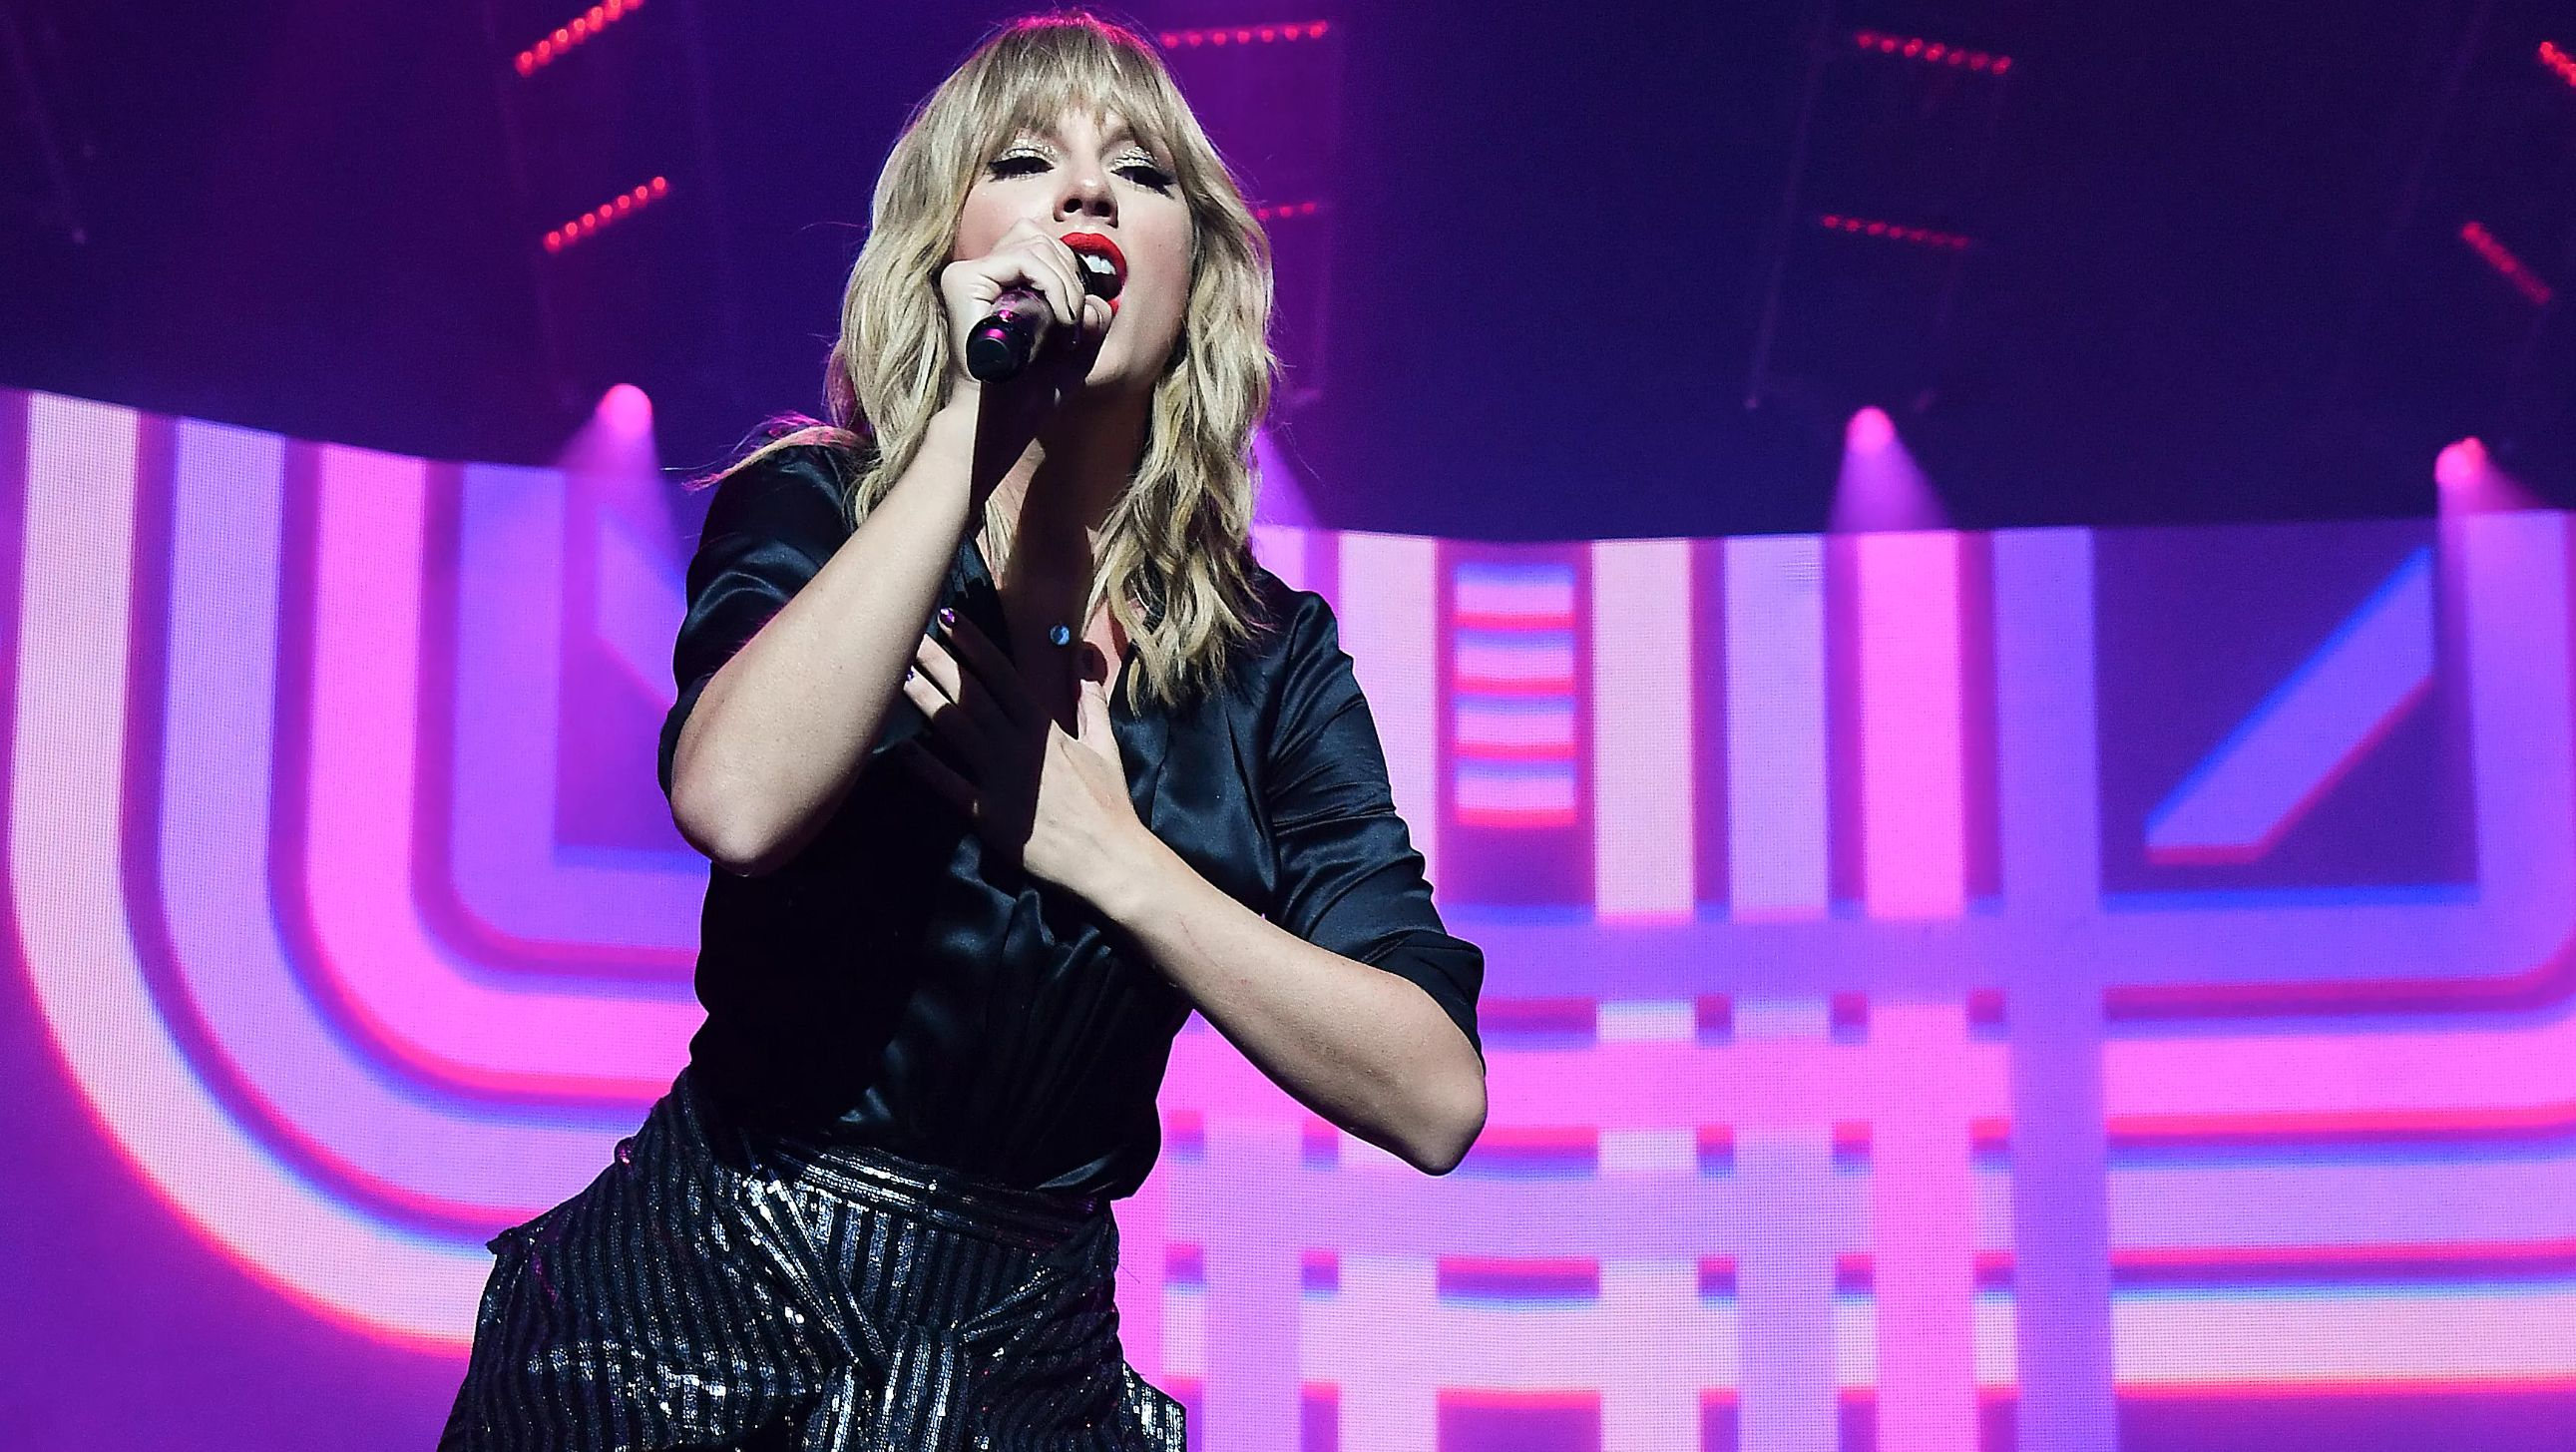 """ARIS, FRANCE - SEPTEMBER 09: (EDITORS NOTE: Image approved by Artist) Taylor Swift performs during the """"City of Lover"""" concert at L'Olympia on September 9, 2019 in Paris, France."""